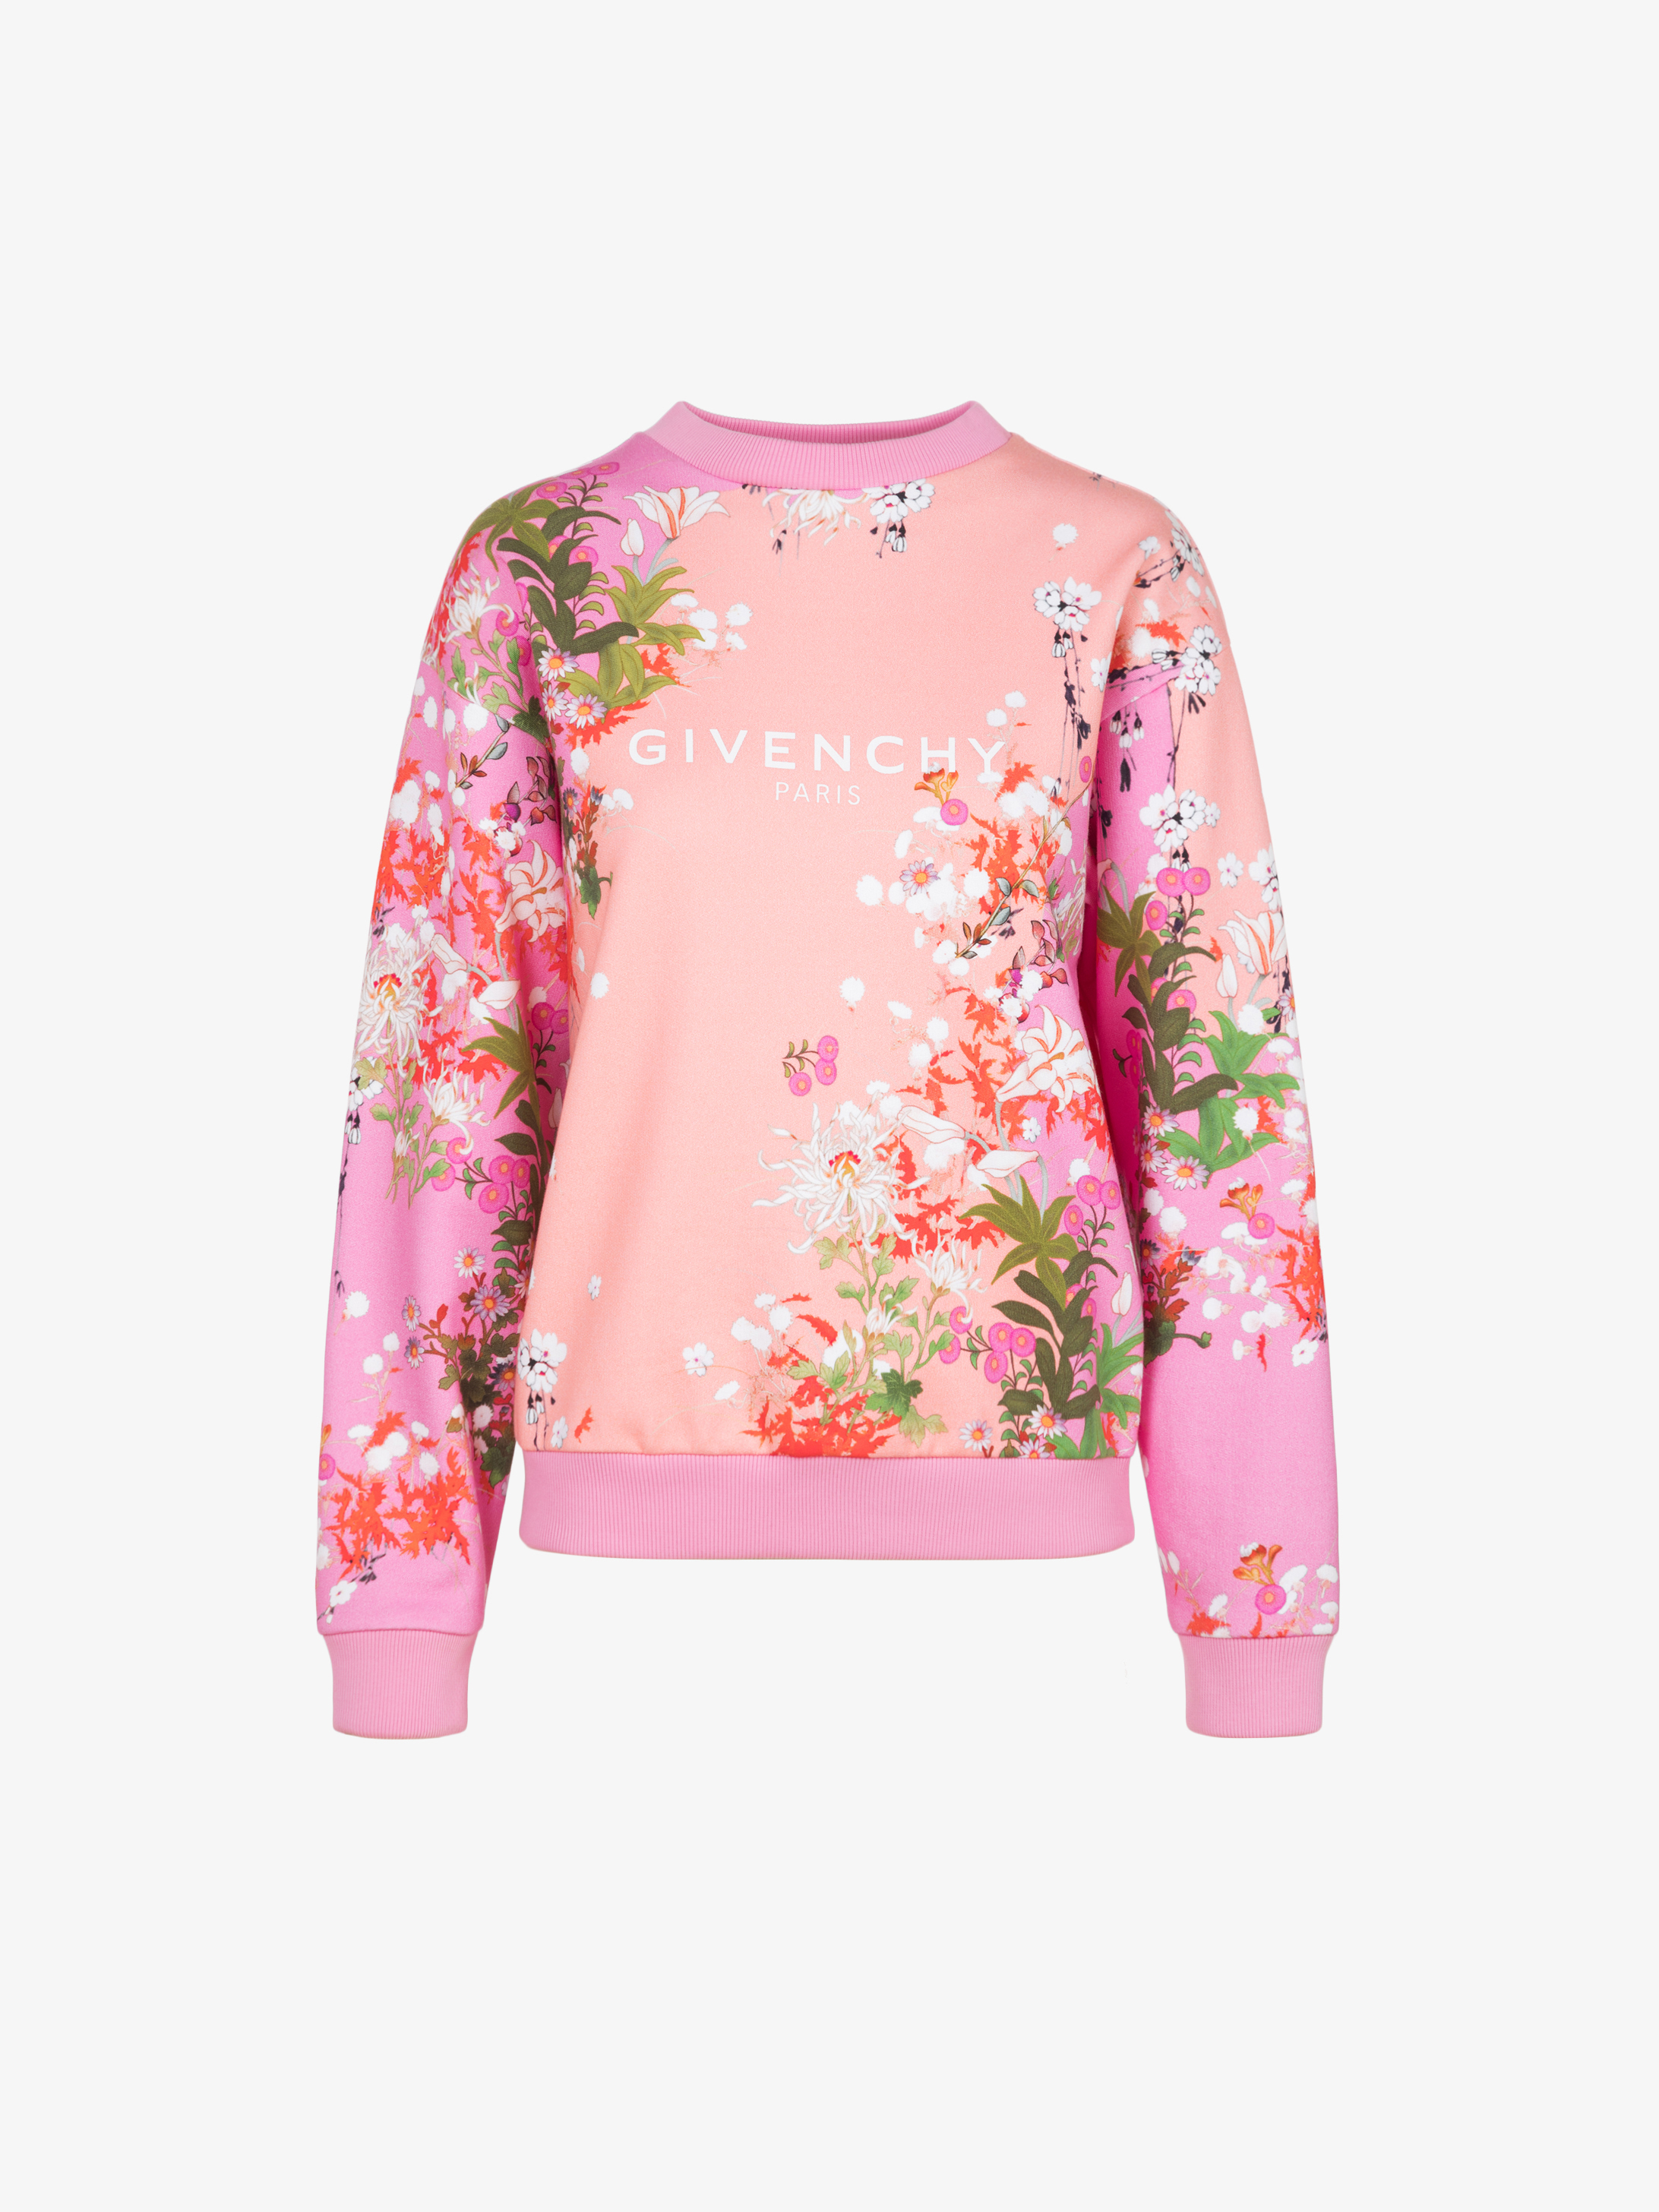 GIVENCHY PARIS floral printed sweatshirt